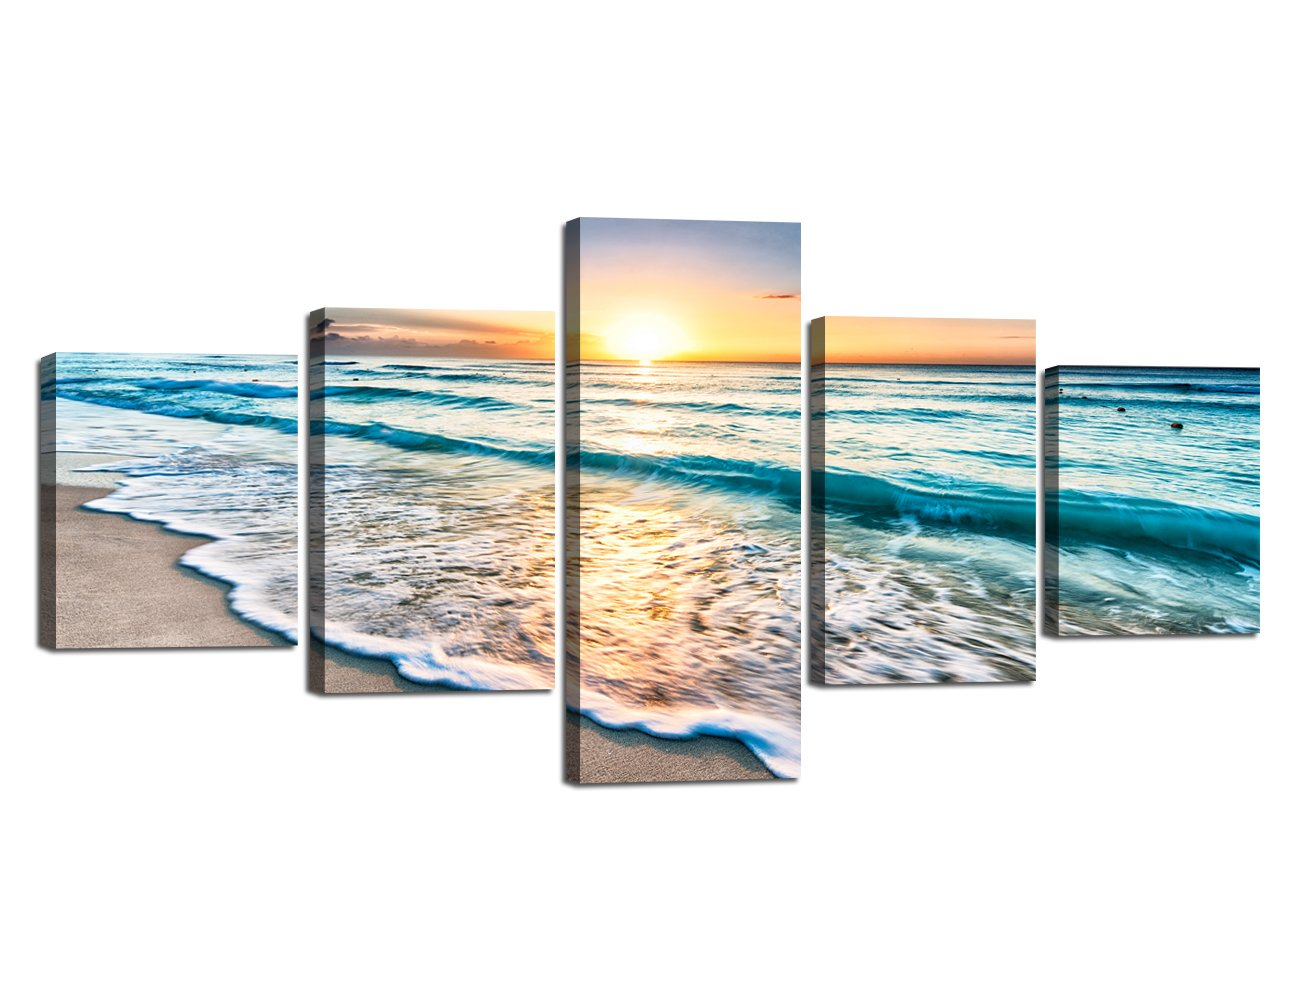 Ocean_13 Small Size Scene of Sea Waves Palm Tree Landscape Picture Modern Painting on Canvas 5 Piece Framed Wall Art for Living Room Bedroom Kitchen Home Decor Stretched Gallery Canvas Wrap Giclee Print (60''W x 32''H)